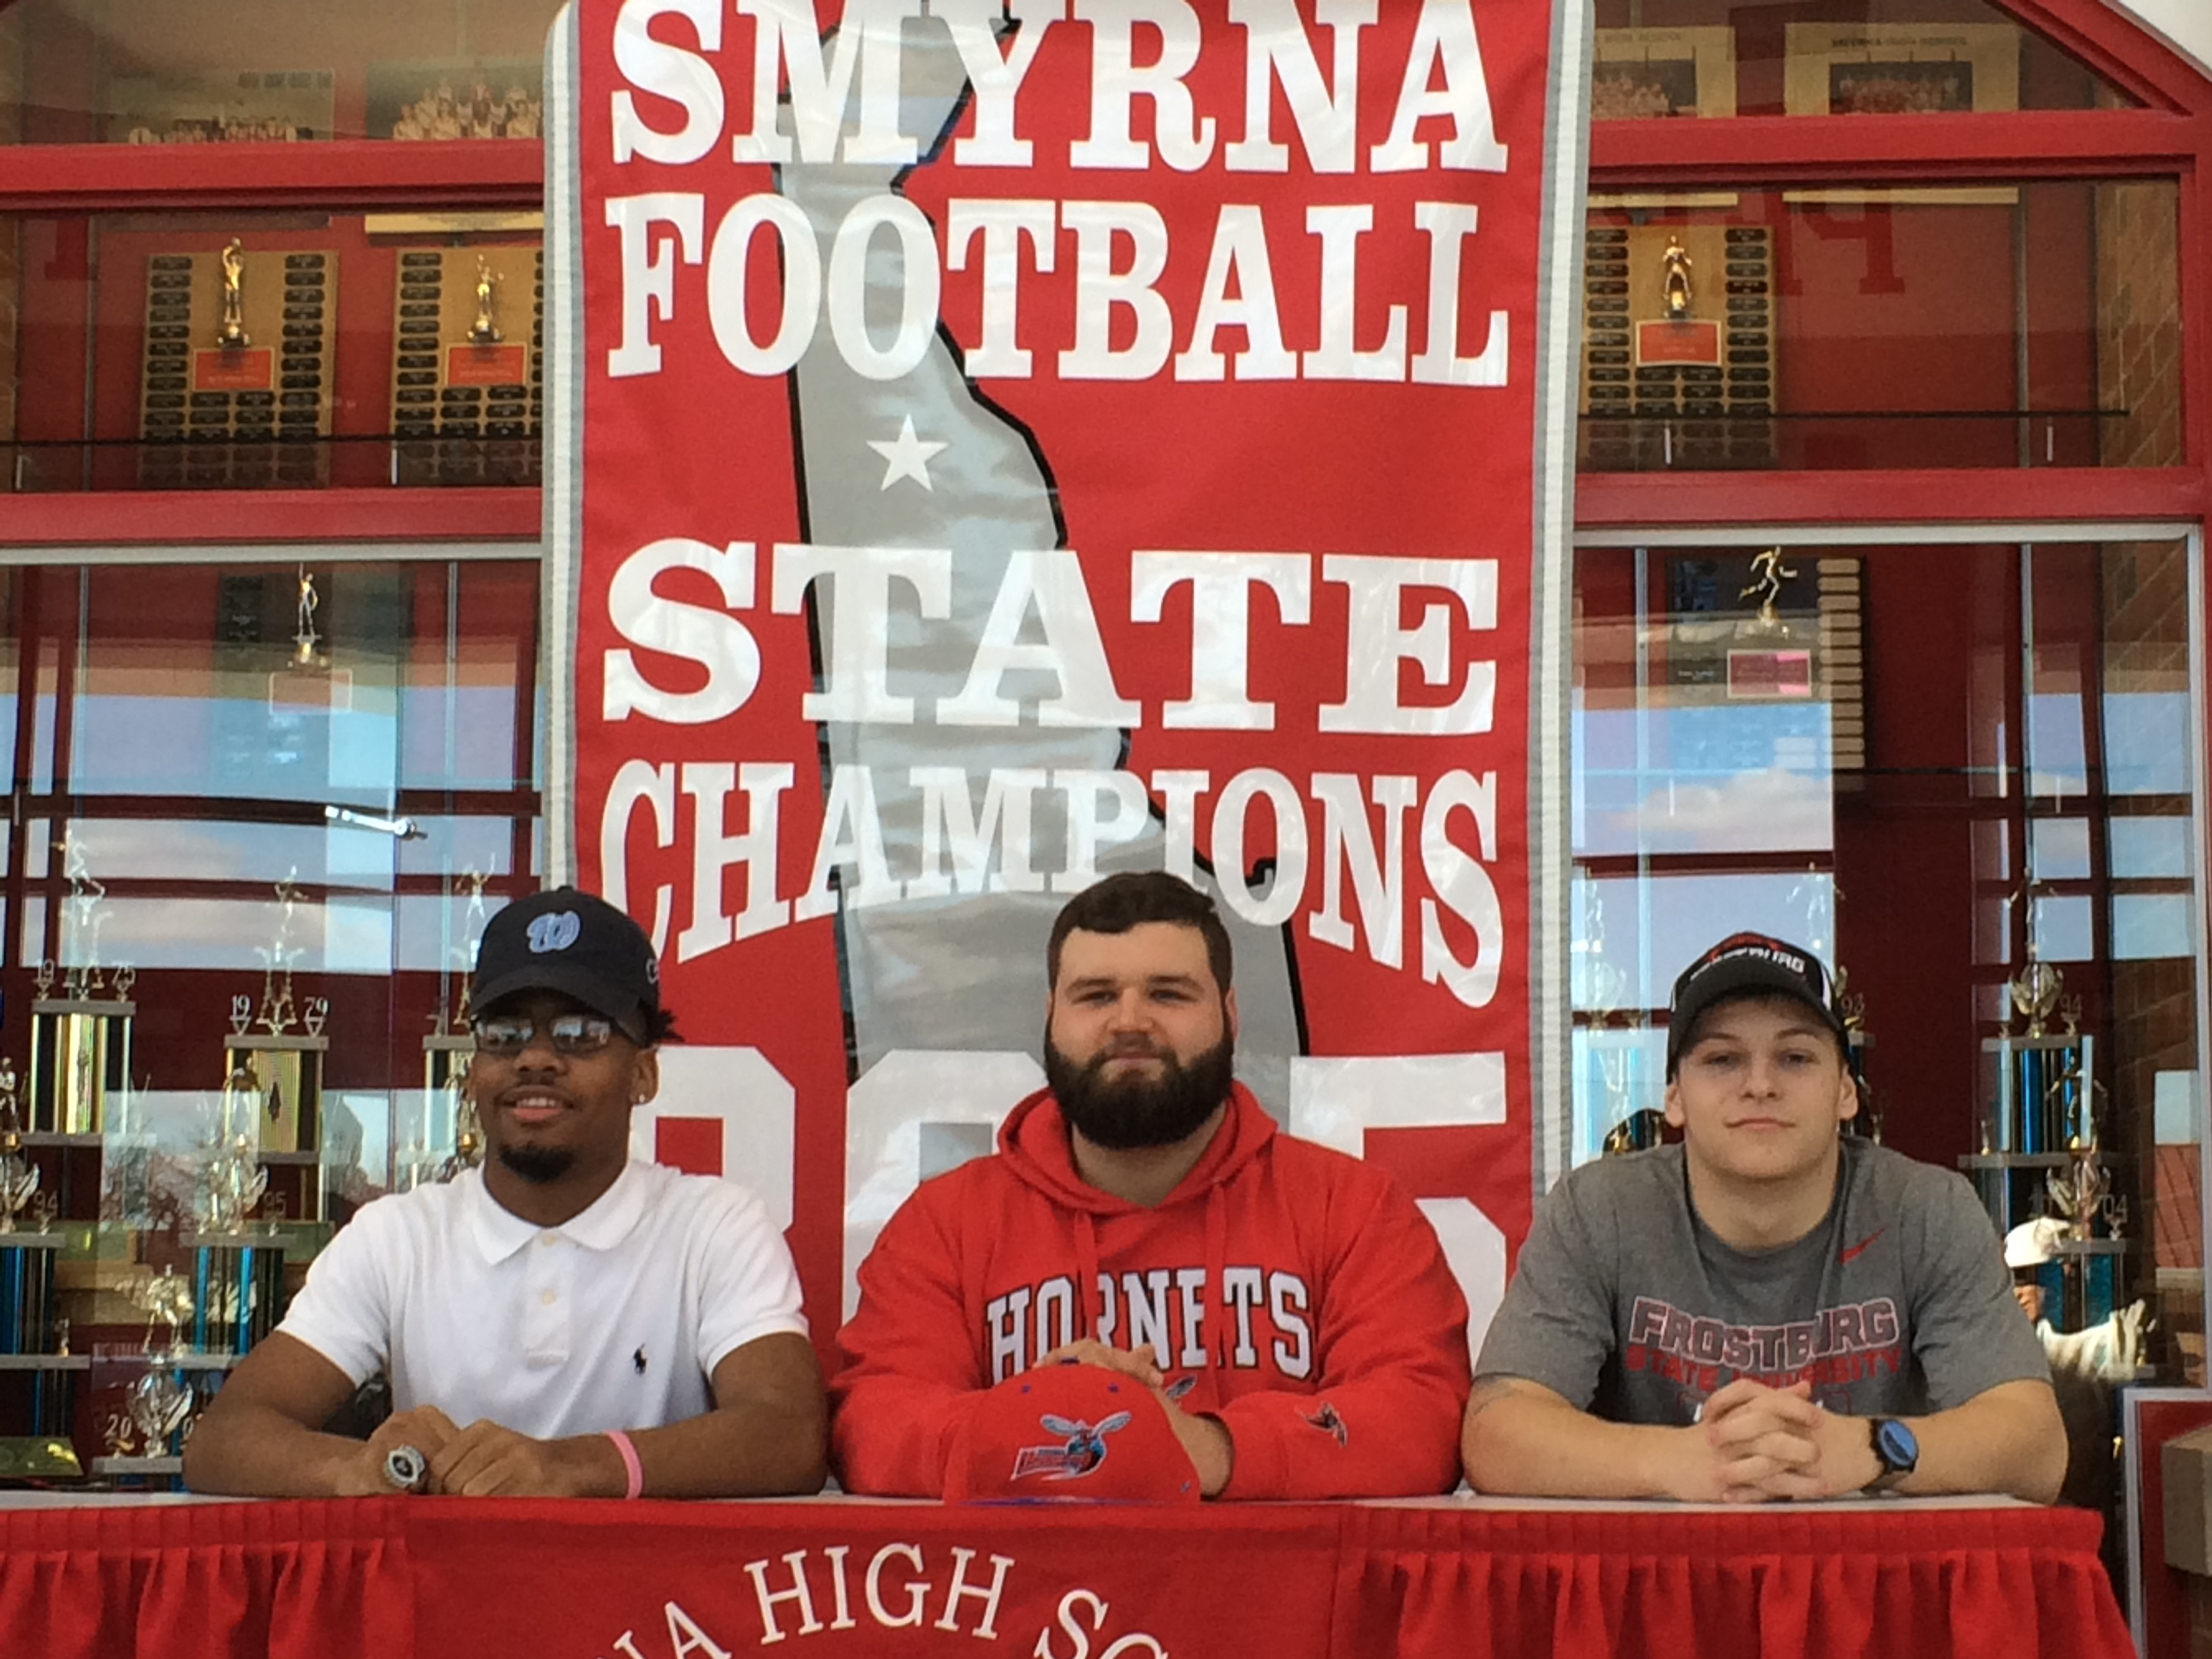 Smyrna High School Football Signing Day